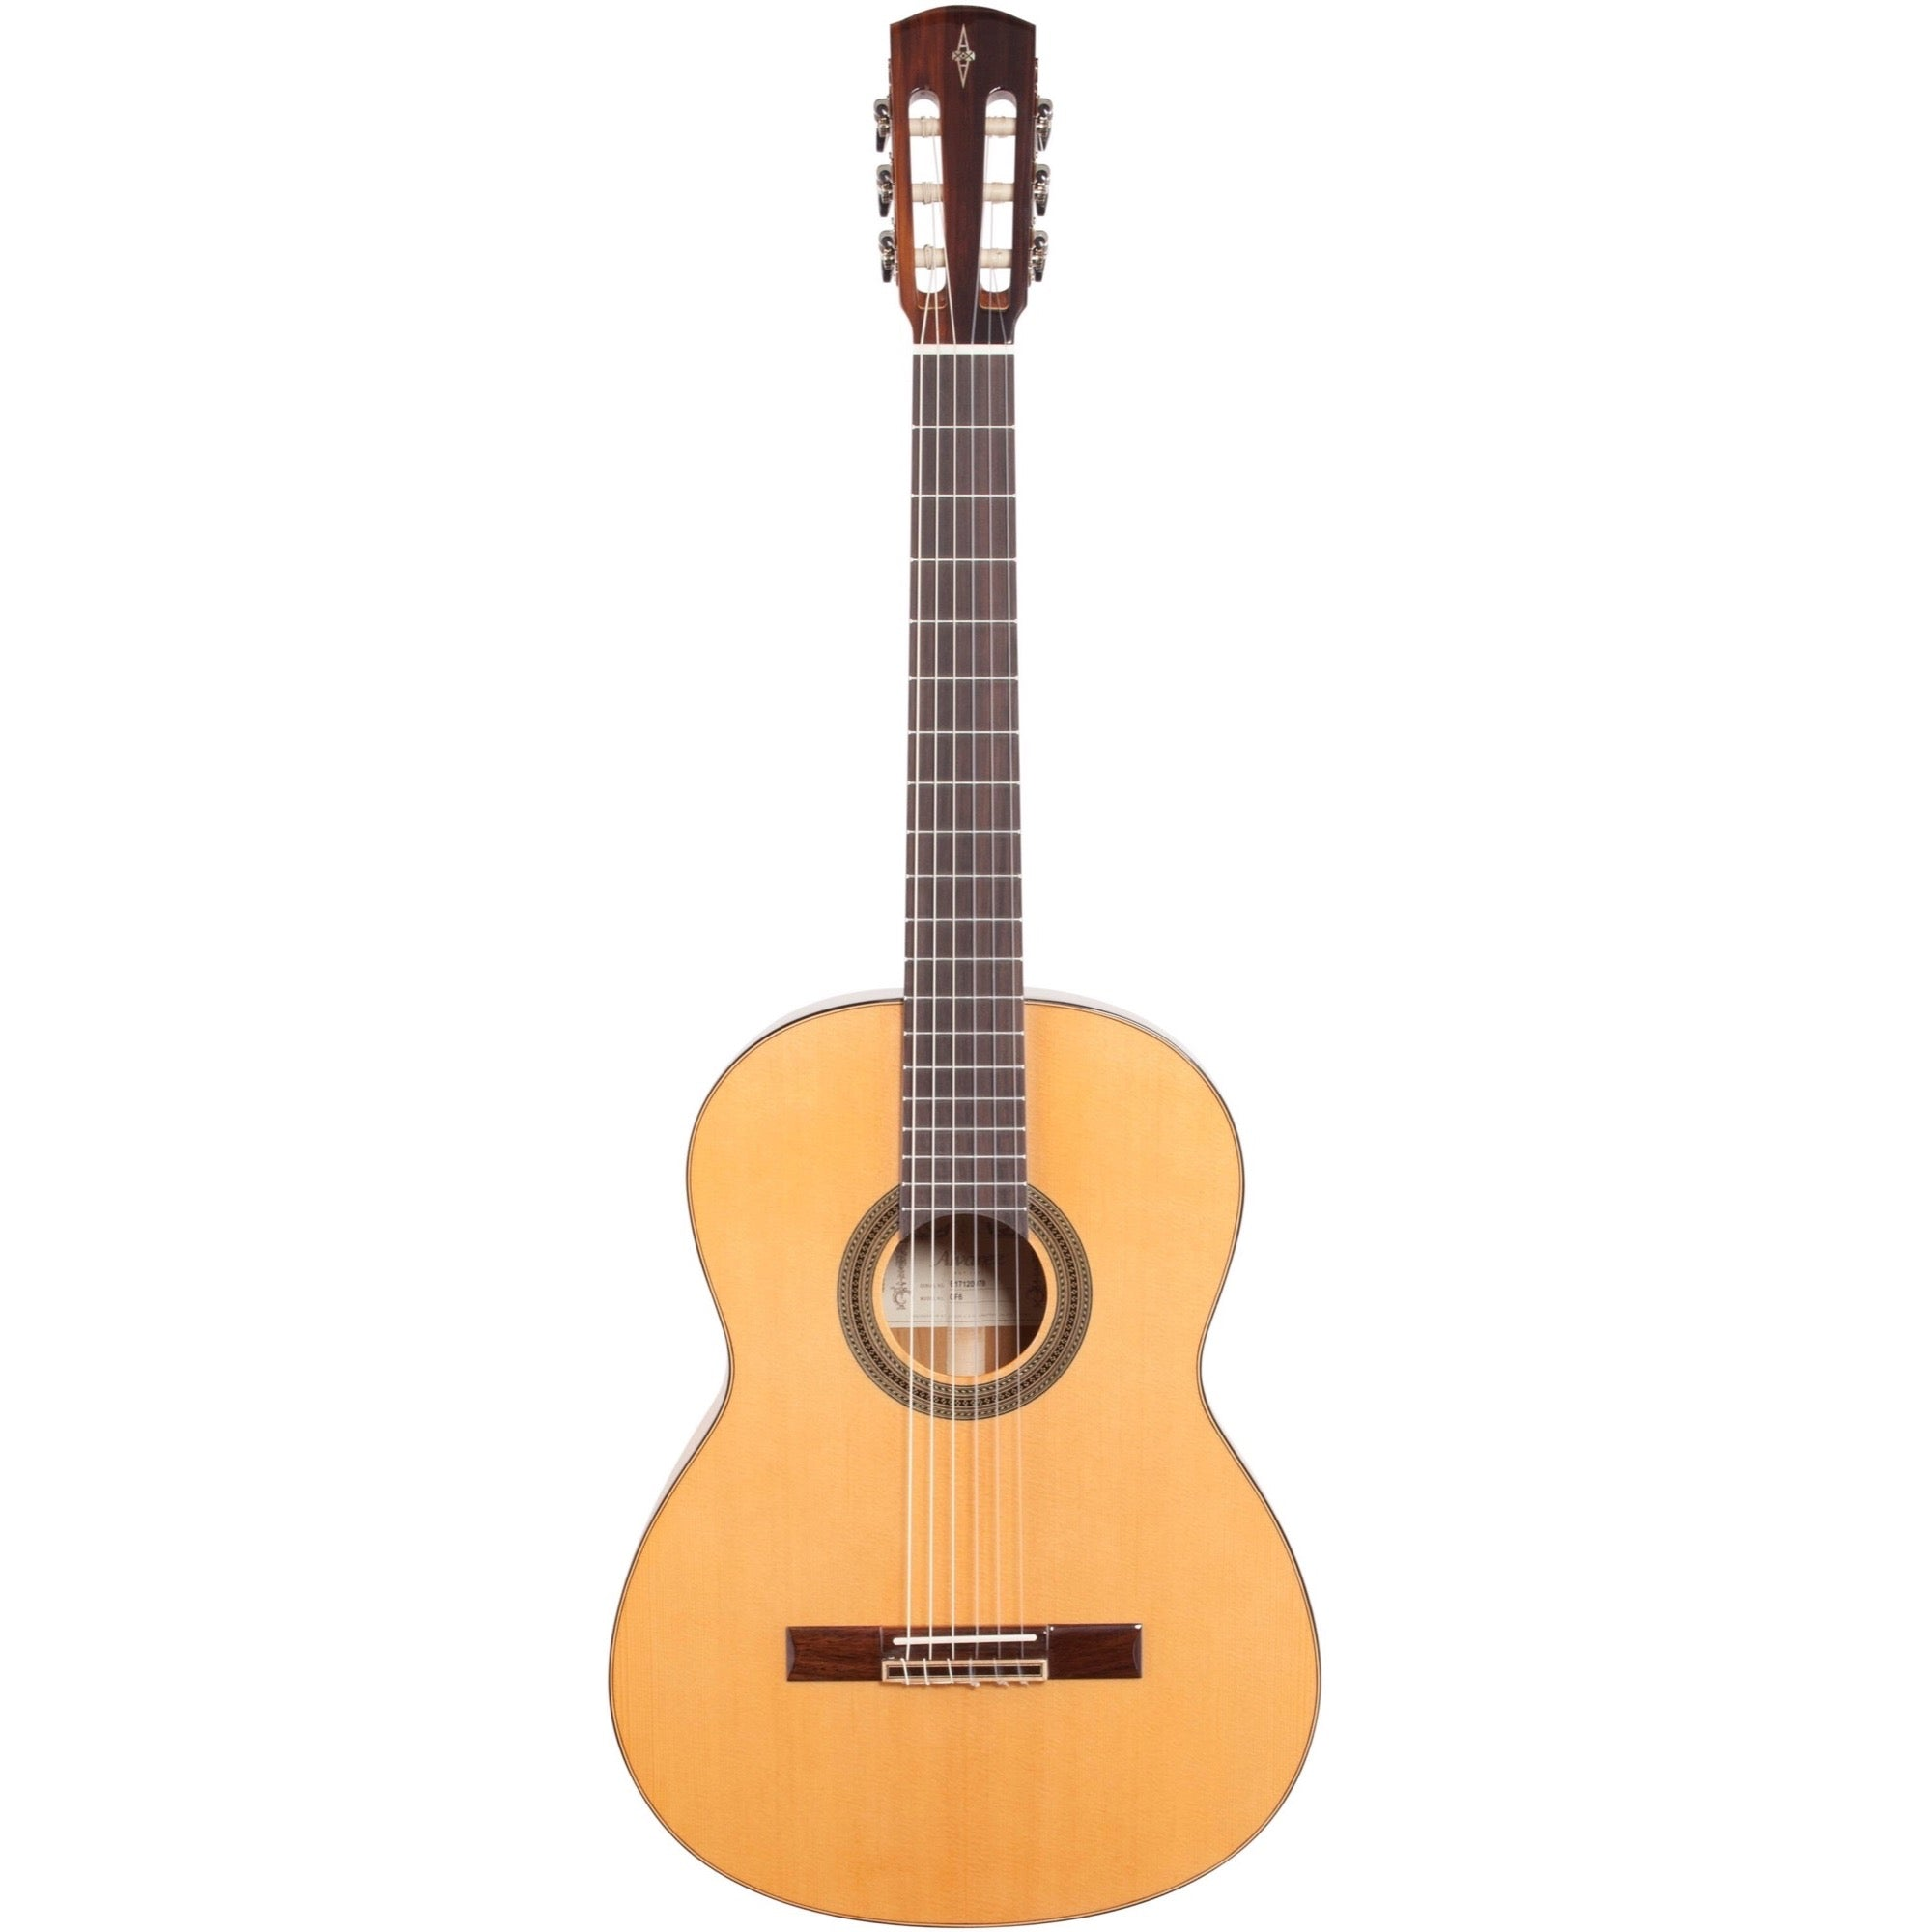 Alvarez Cadiz Flamenco Acoustic Guitar